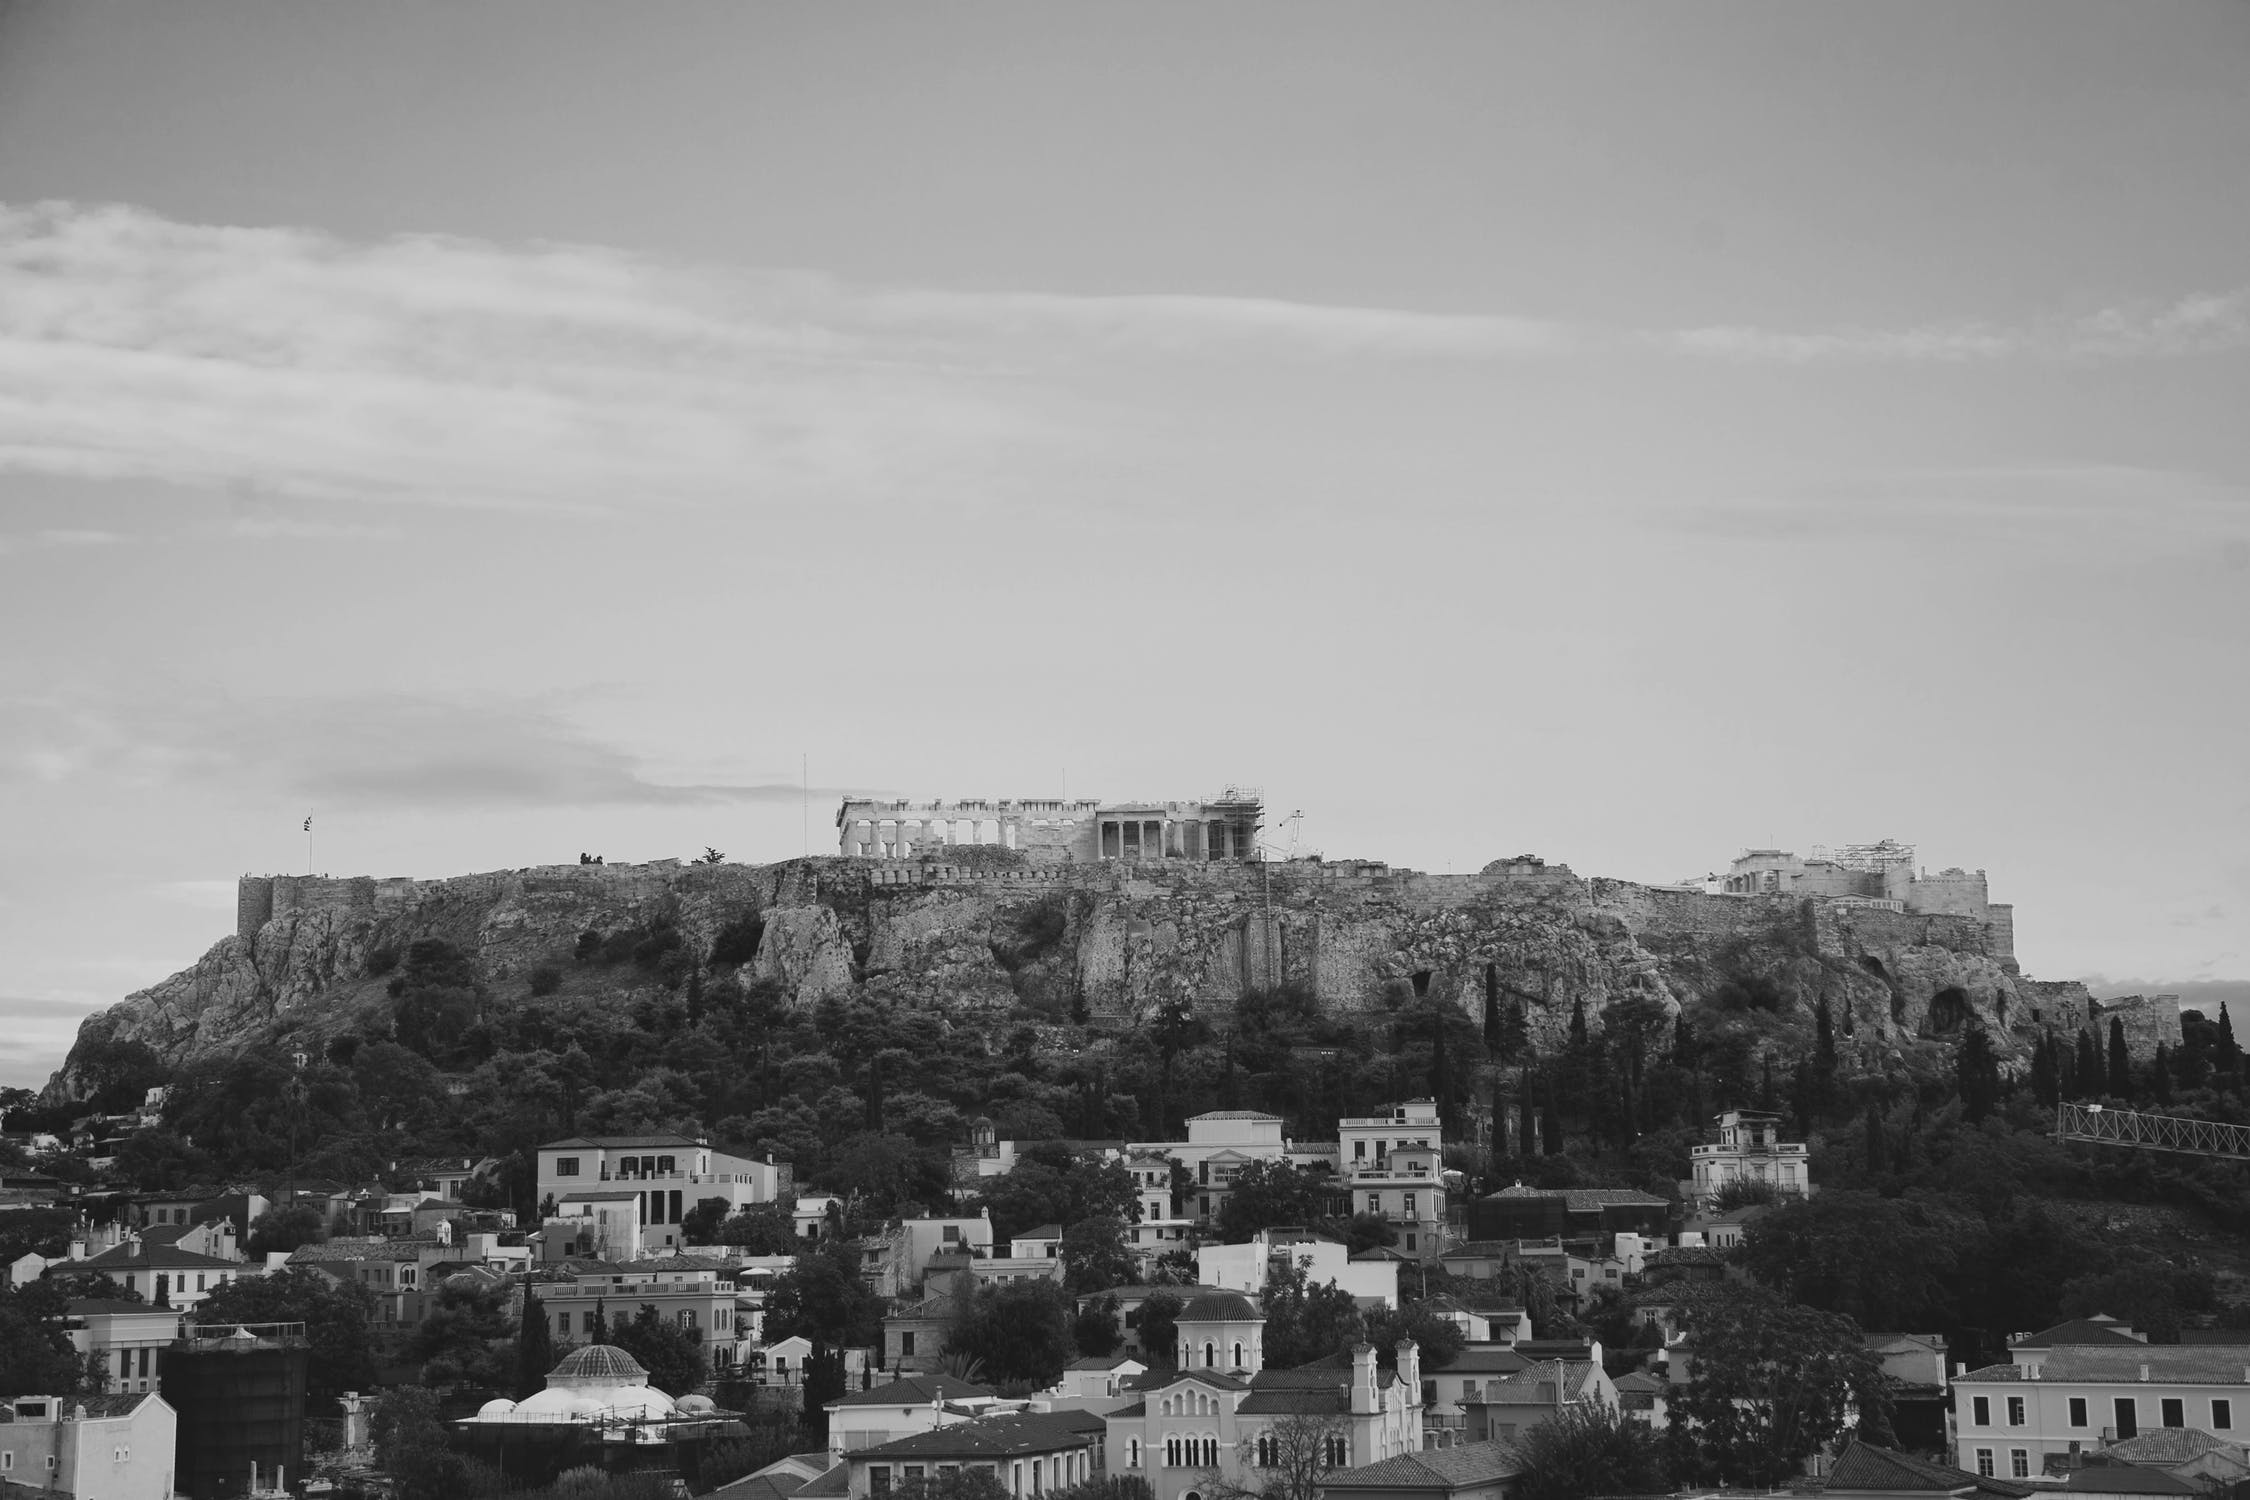 Black and white city photo